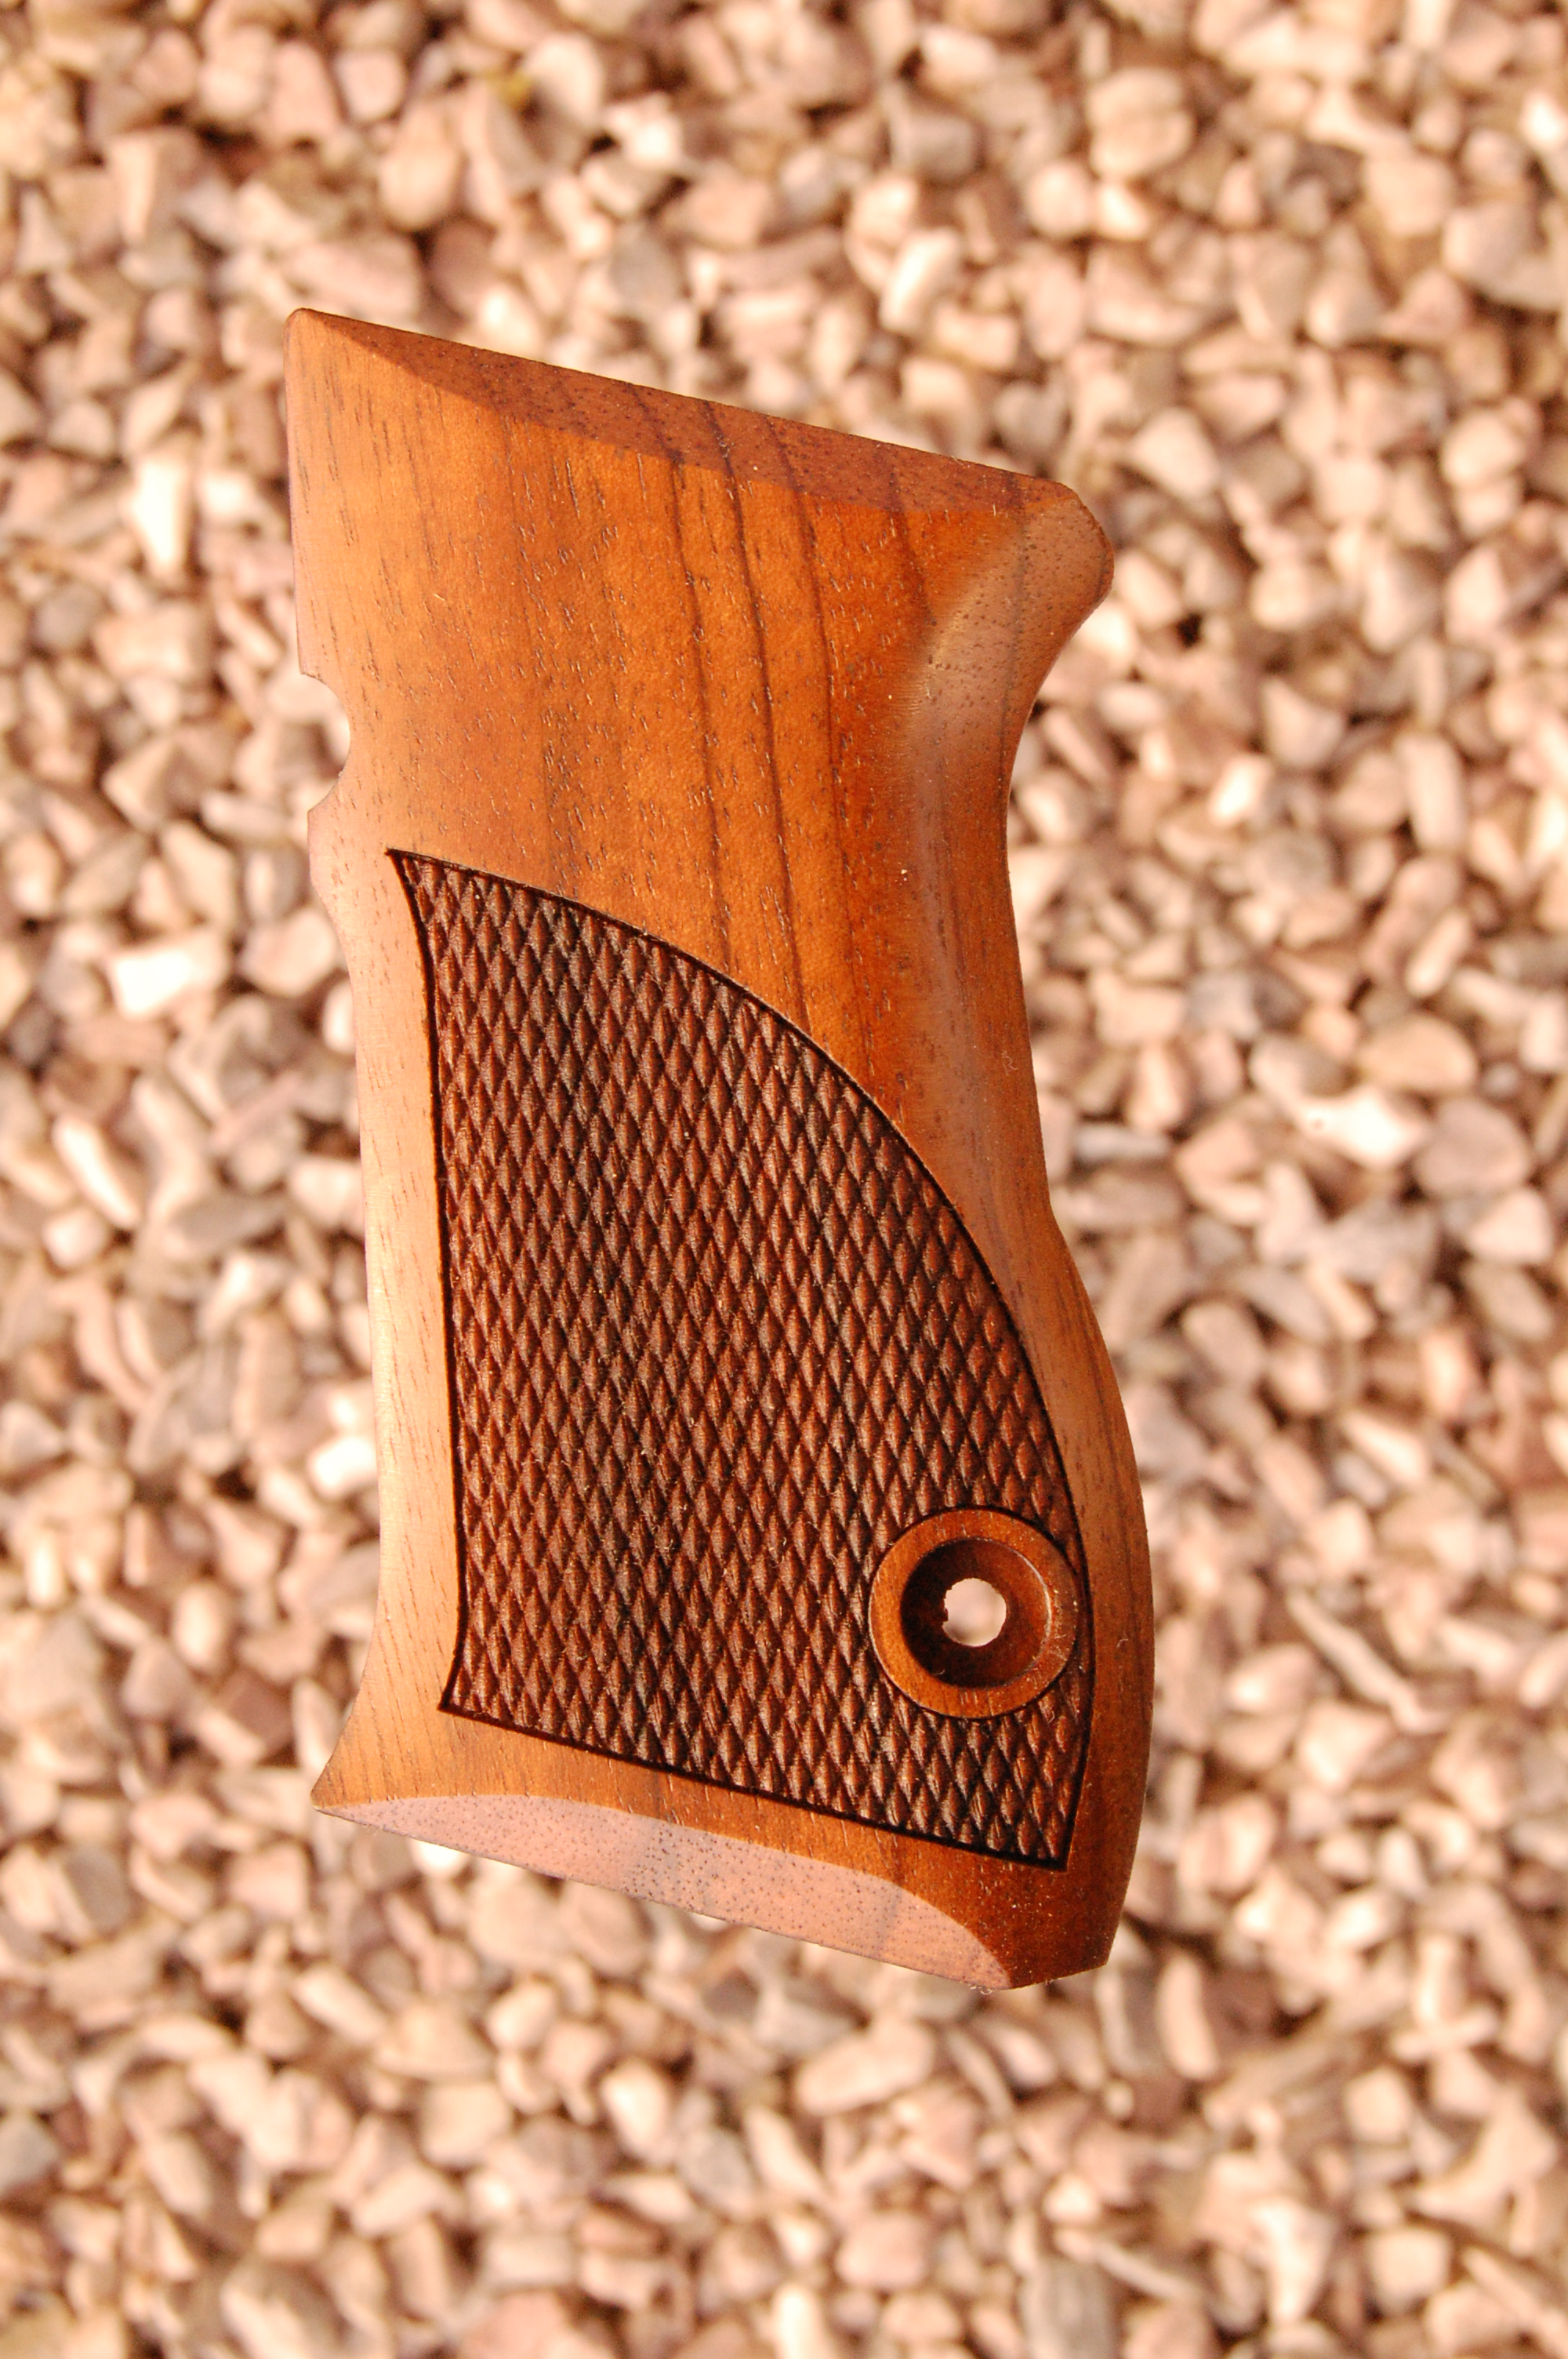 JERICHO 941 FB grips (checkered) - full size